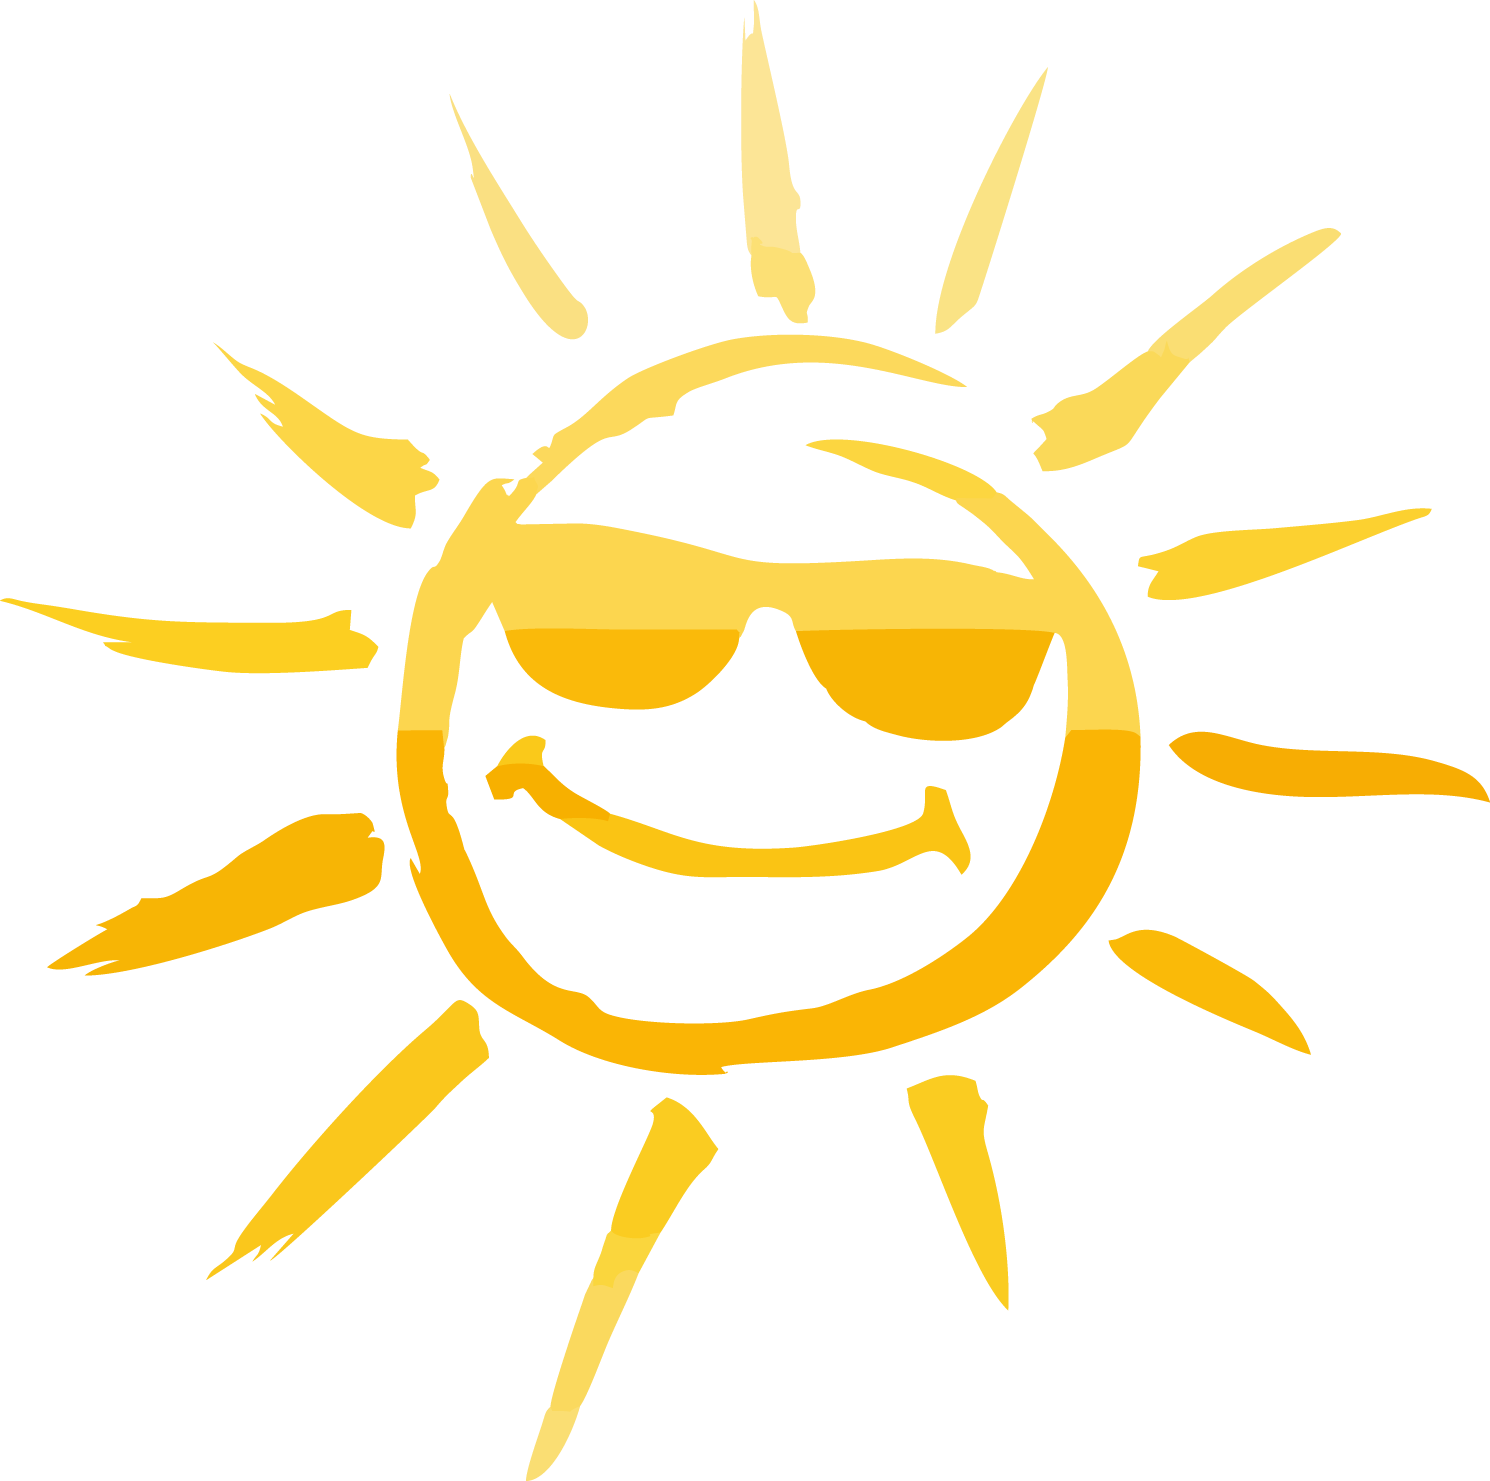 Sonne.png